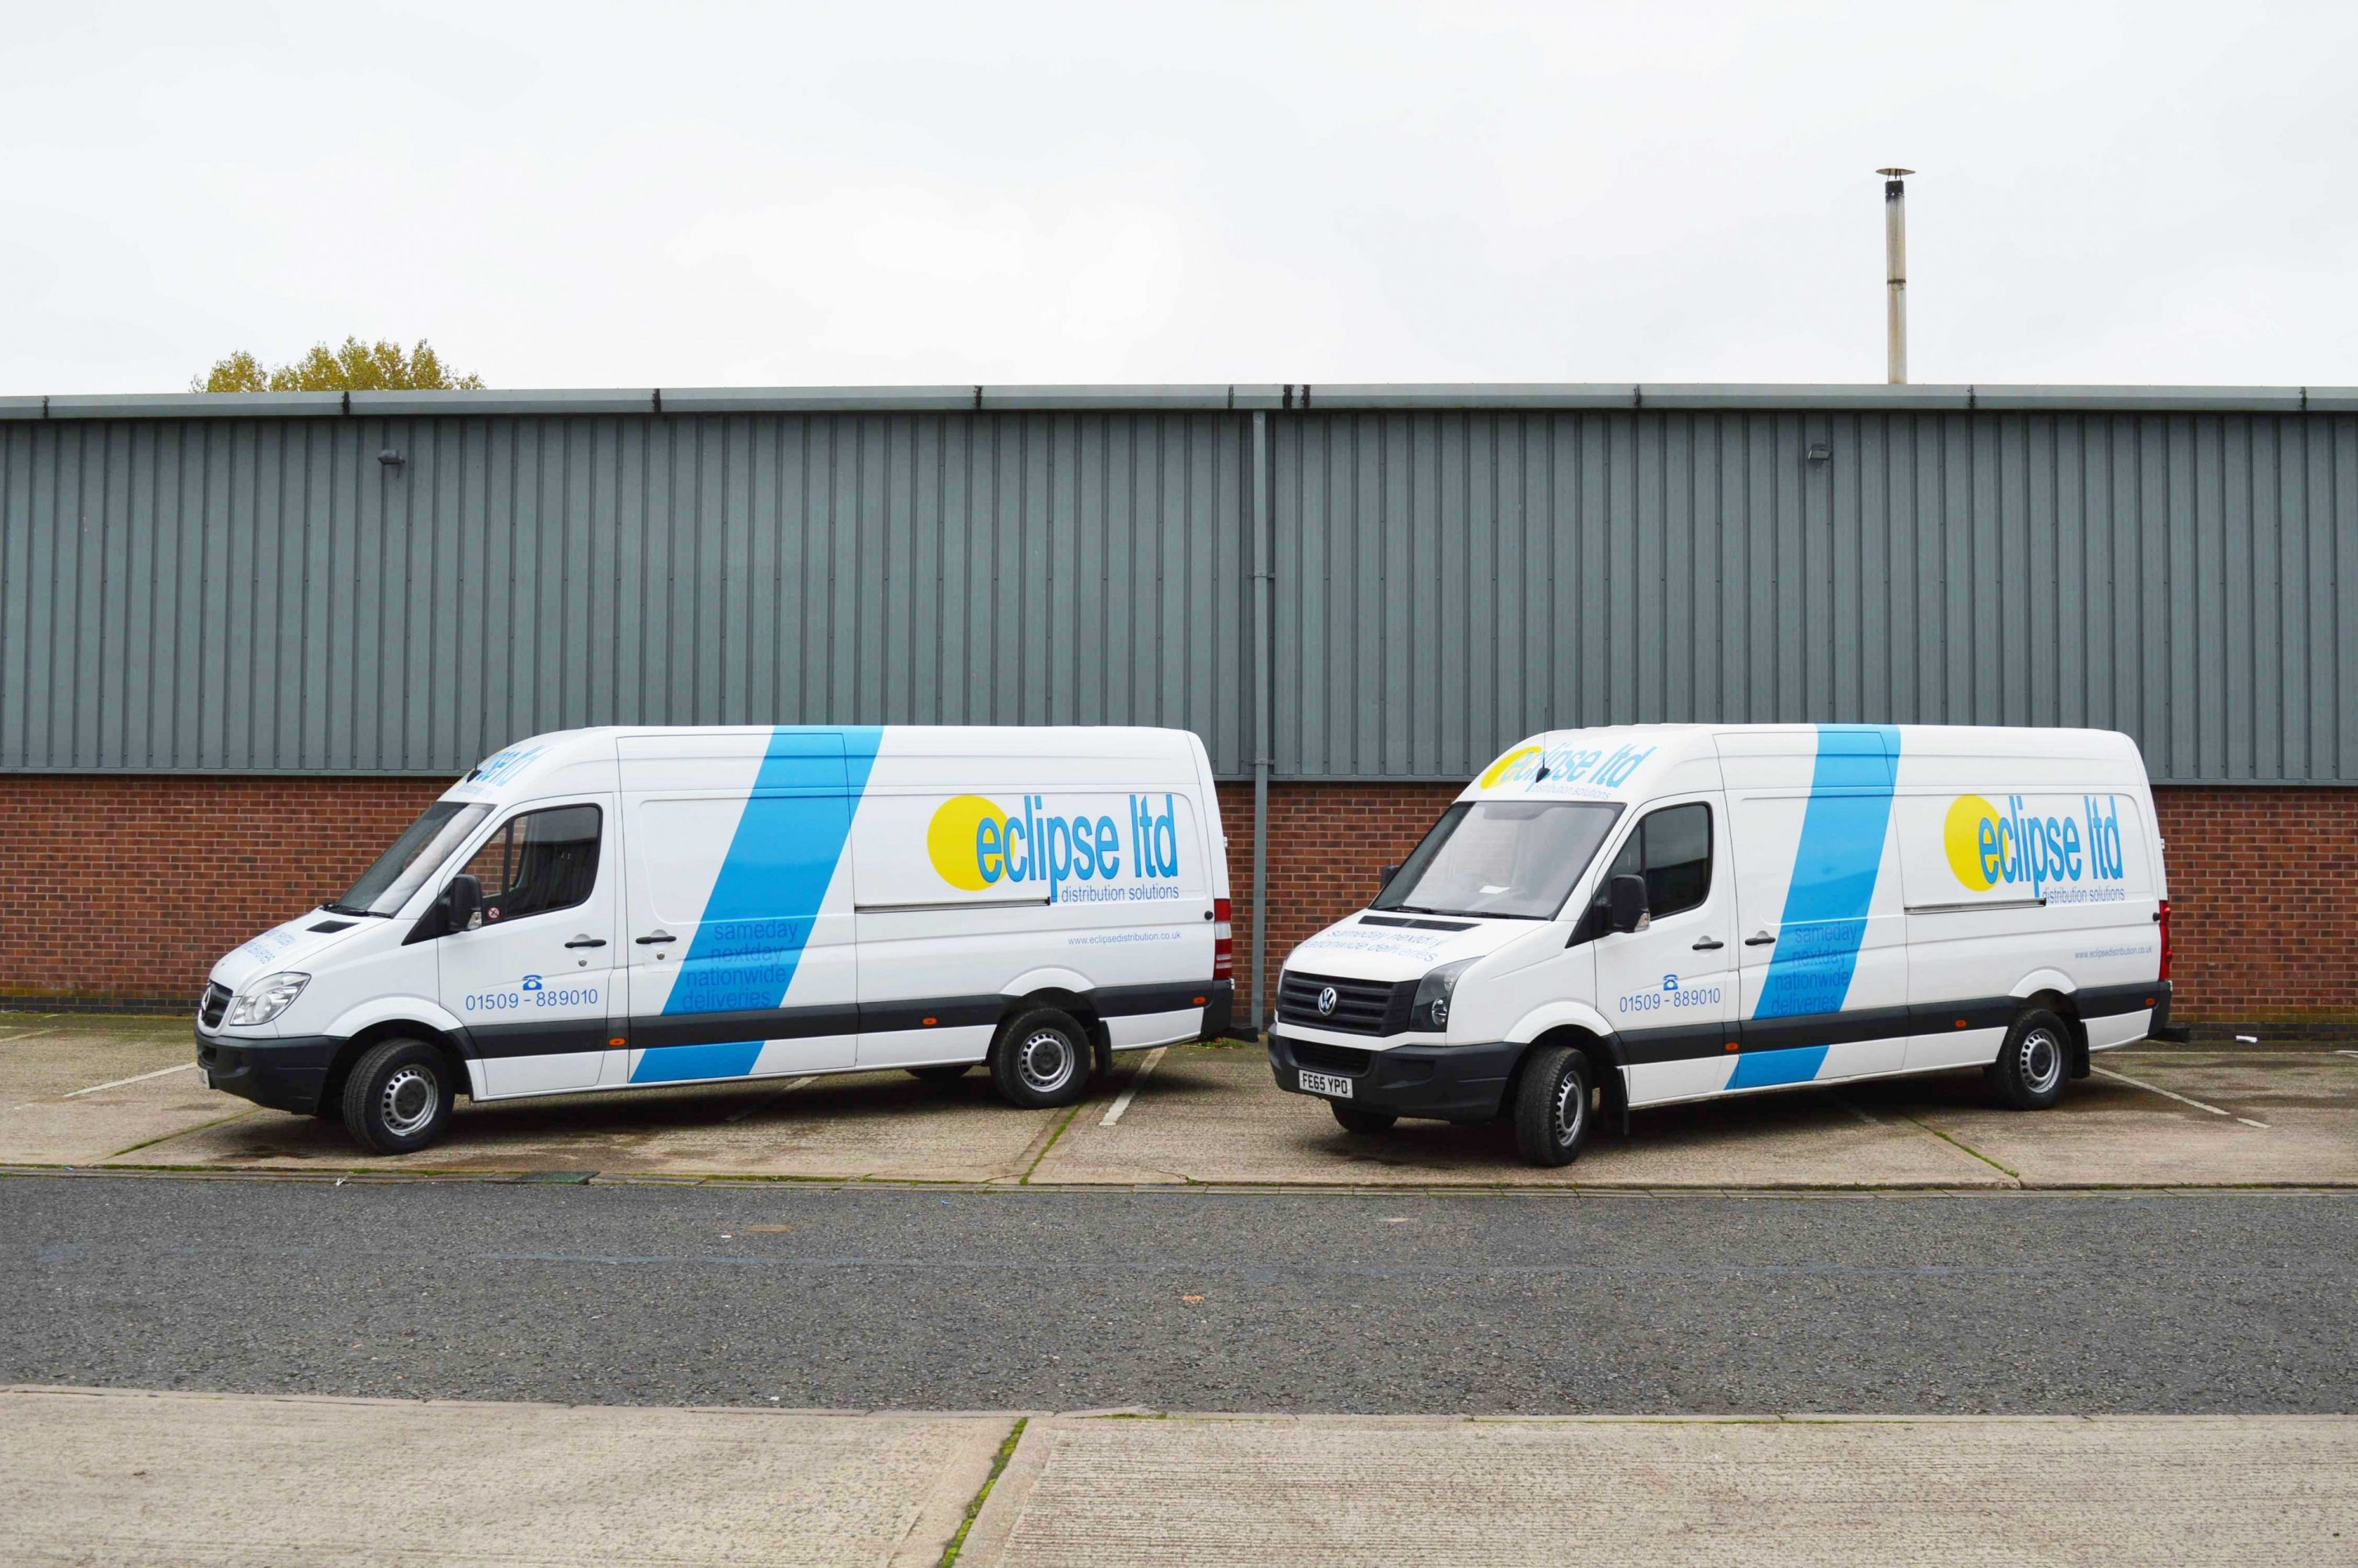 An image of the Side View of two Eclipse Distribution Solutions van used for nationwide delivery